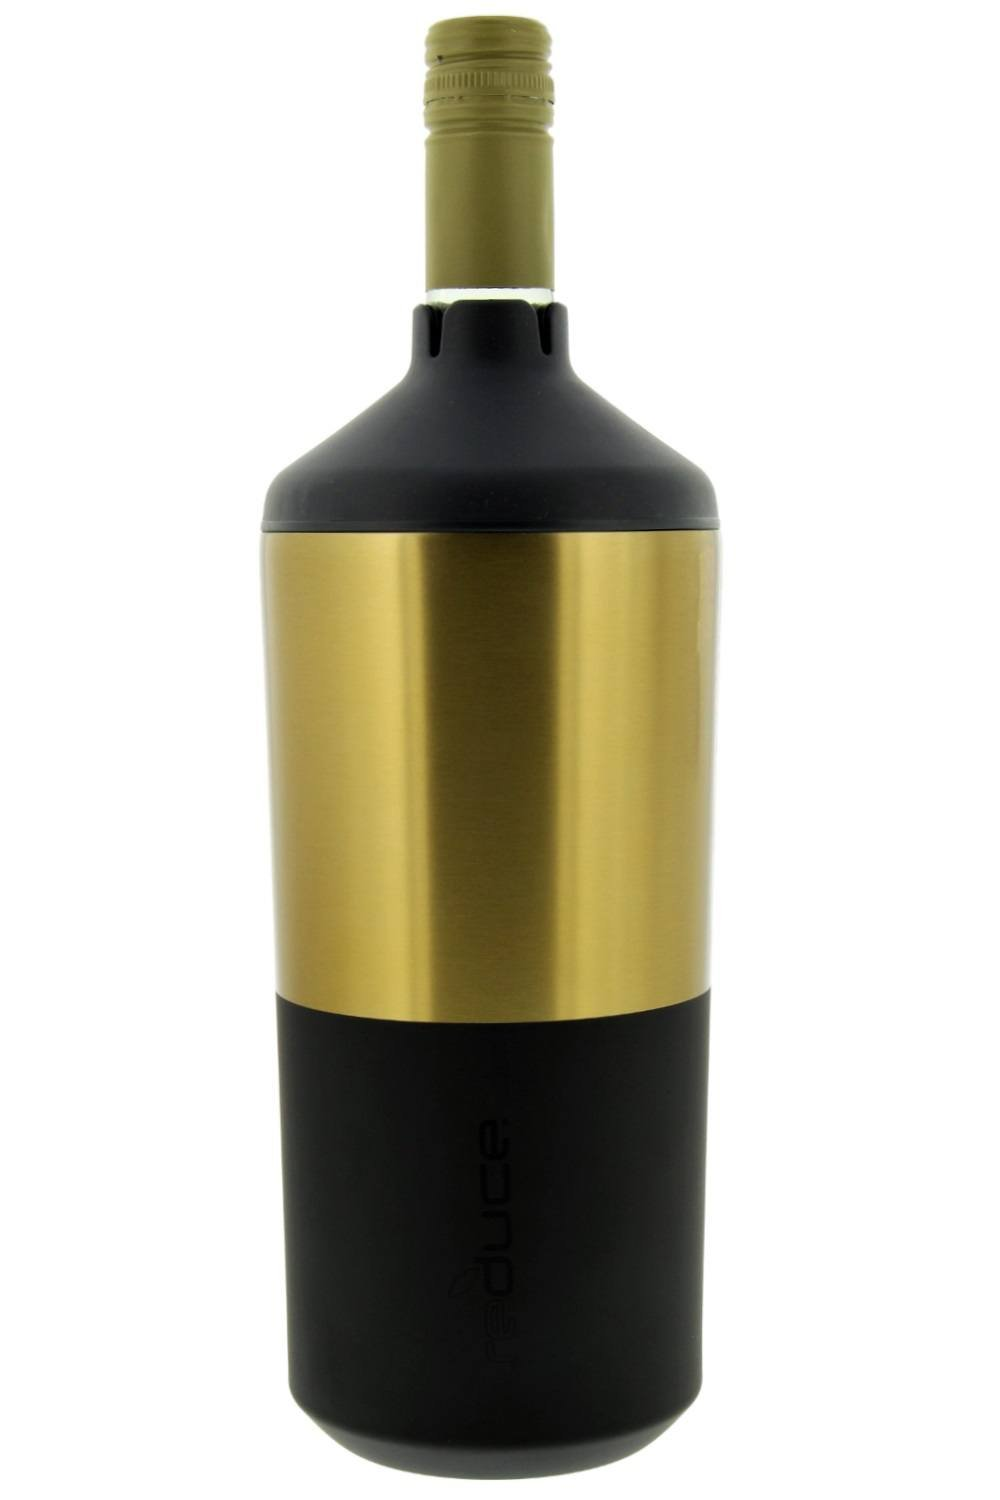 Portable Wine Bottle Cooler by REDUCE - Stainless Steel, Insulated Chiller to Keep Wine at the Perfect Temperature, No Ice Required - Ideal for Outdoor Summer Parties, Fits Most Wine Bottles - Black